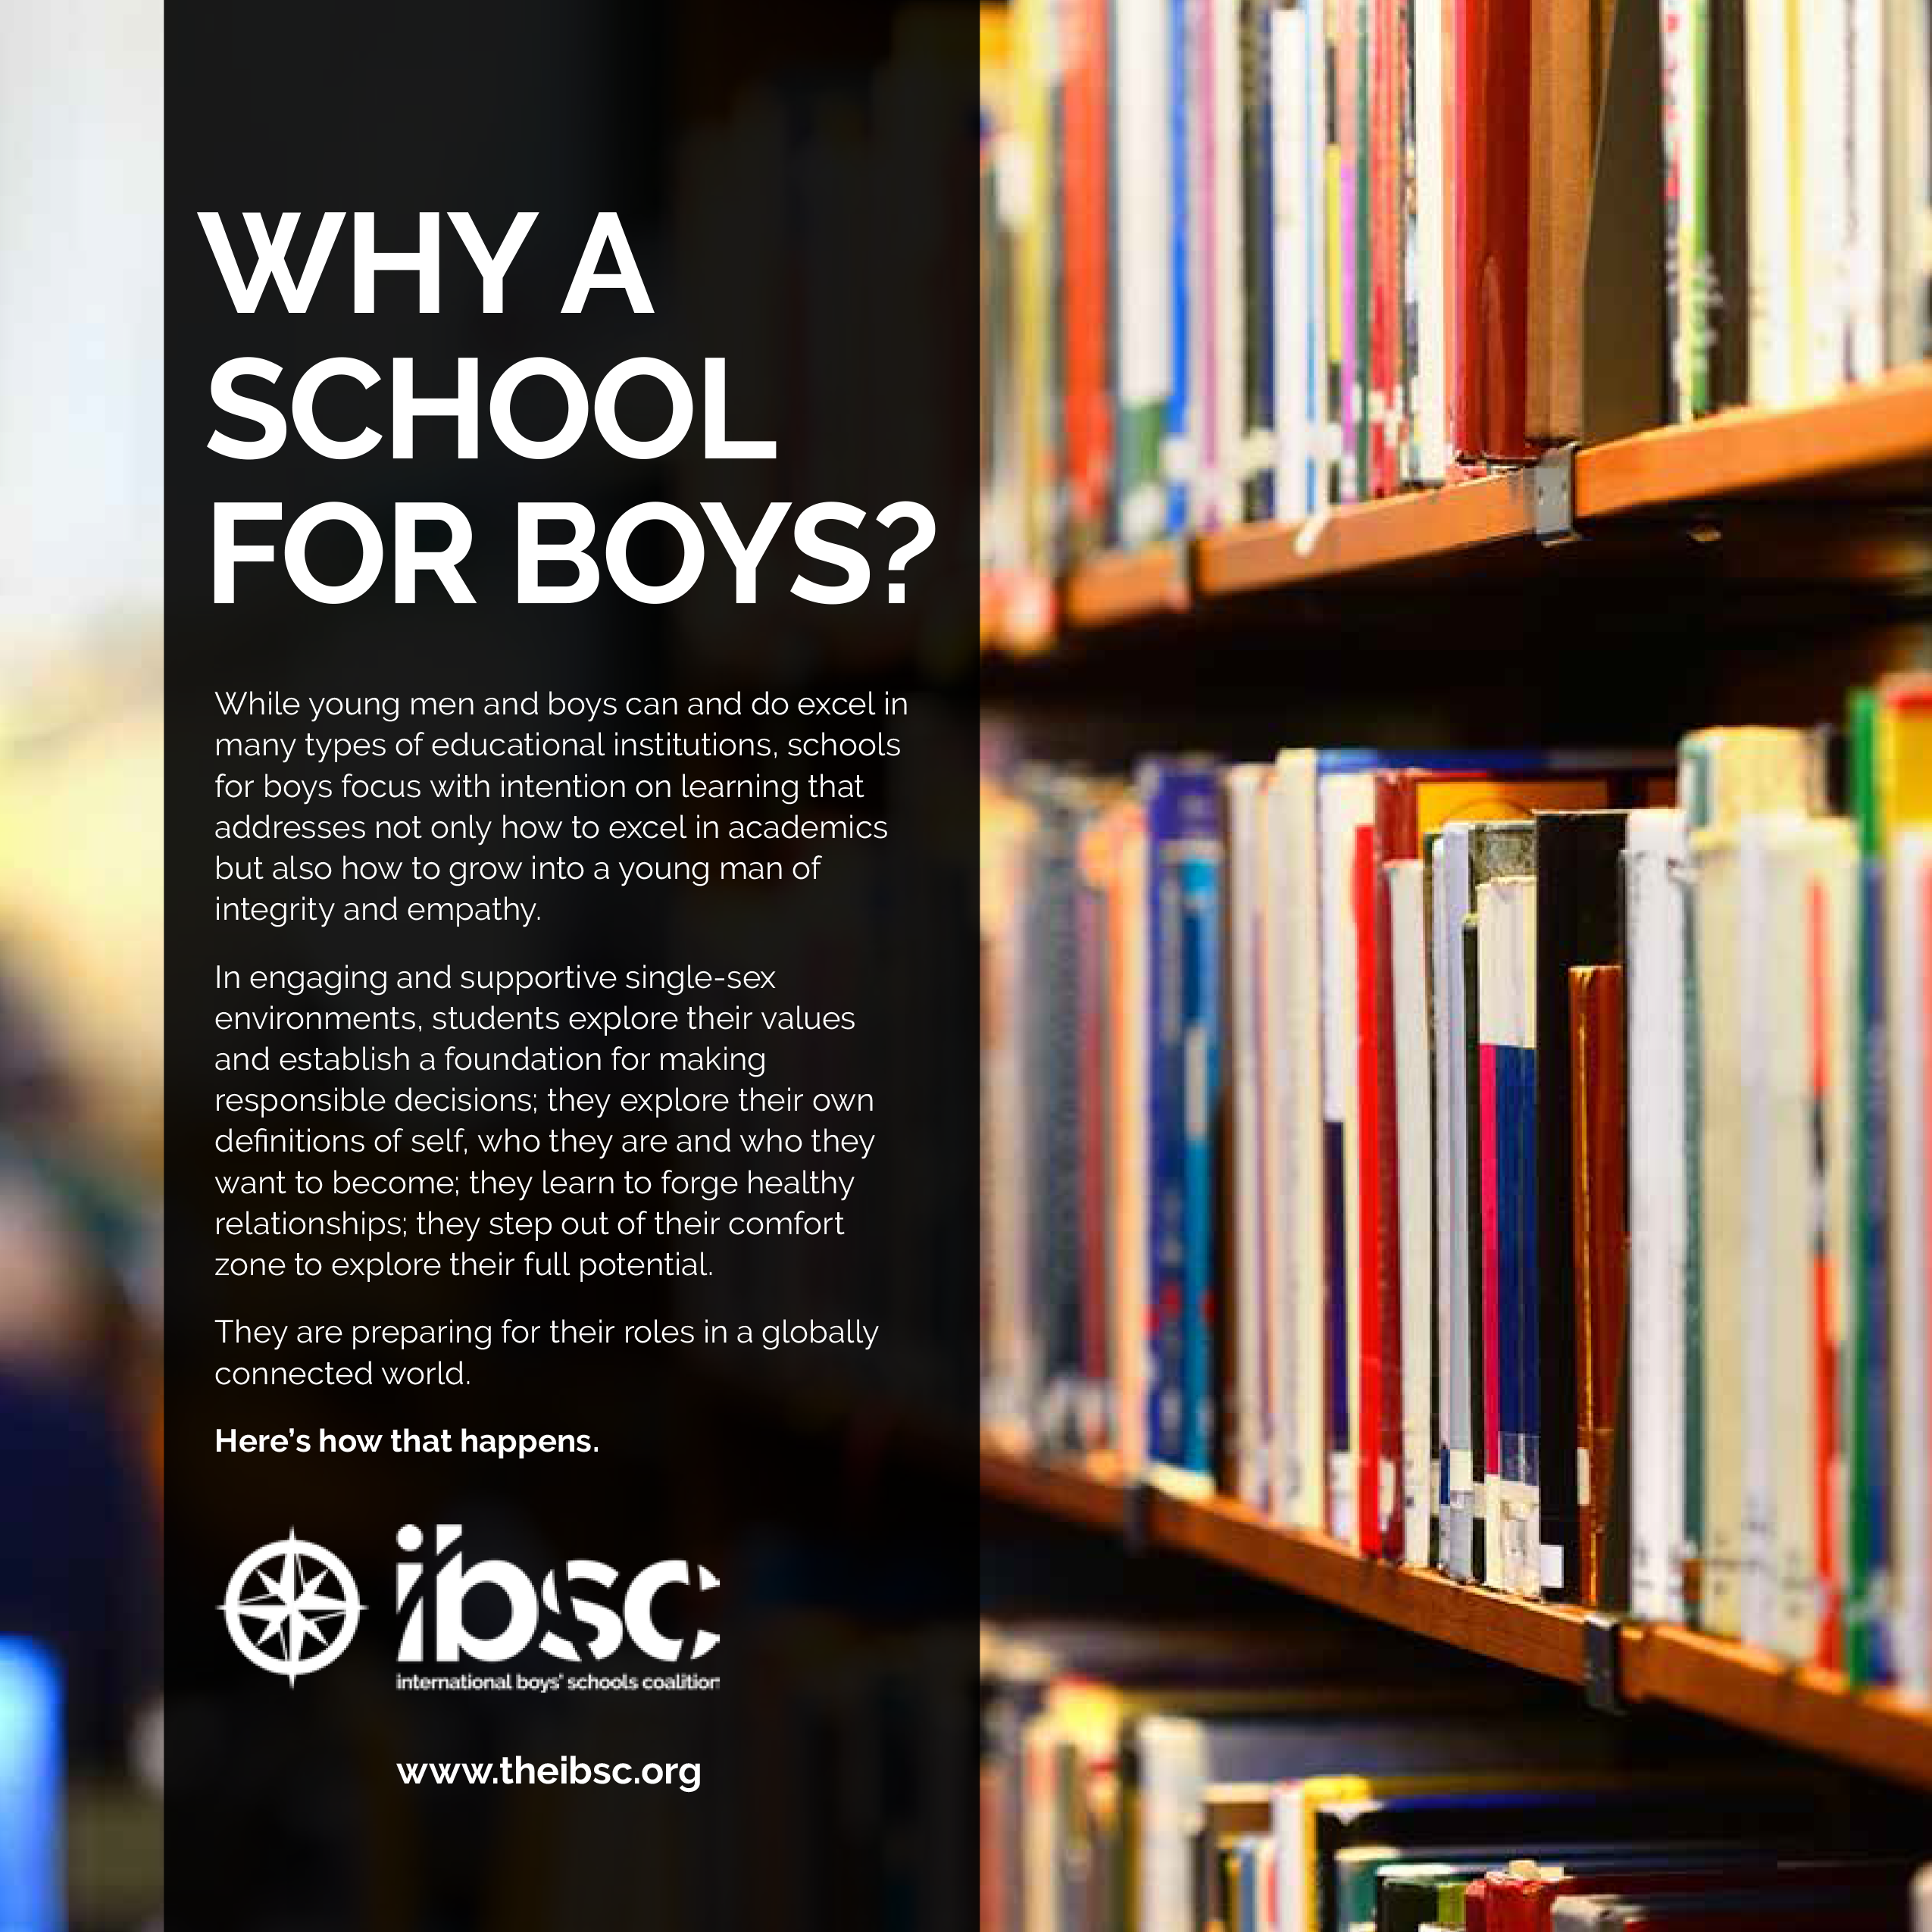 Why a School for Boys